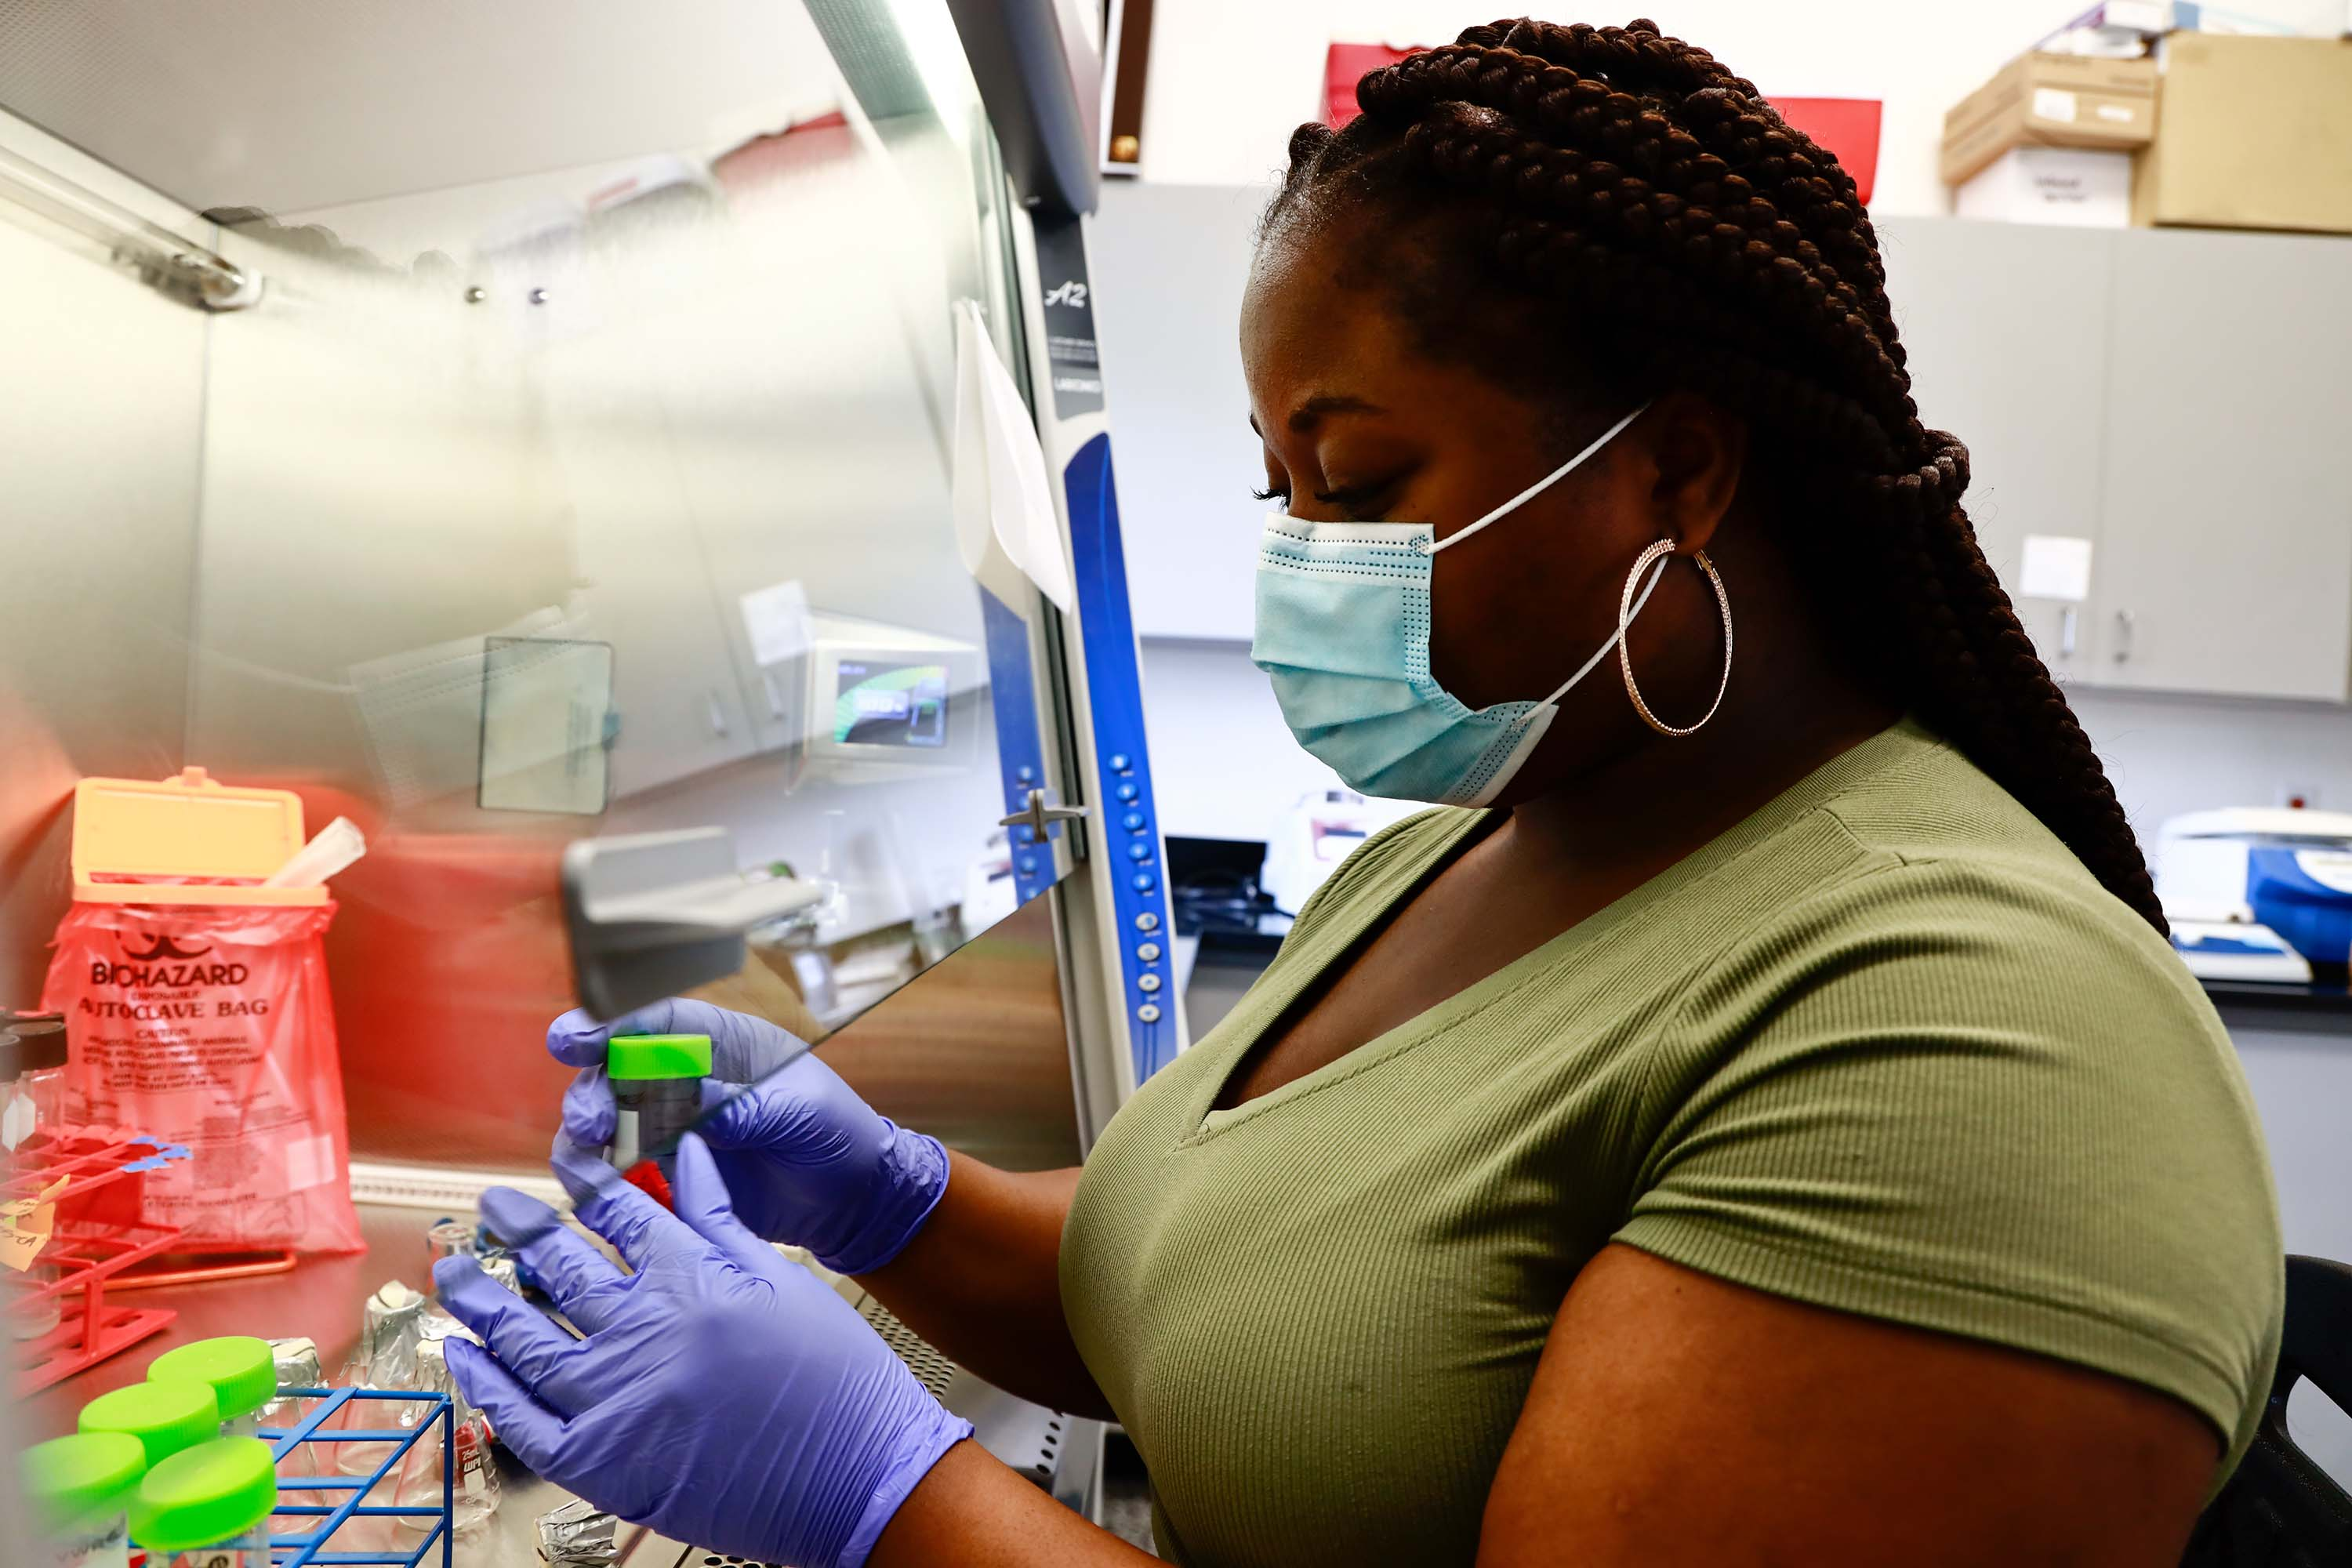 MarSci-LACE intern Hordrice Graham at work in the Marine Microbiology lab at Mote's Aquaculture Research Park (MAP) in Sarasota, Fla. Photo Credit - © Mote Marine Laboratory